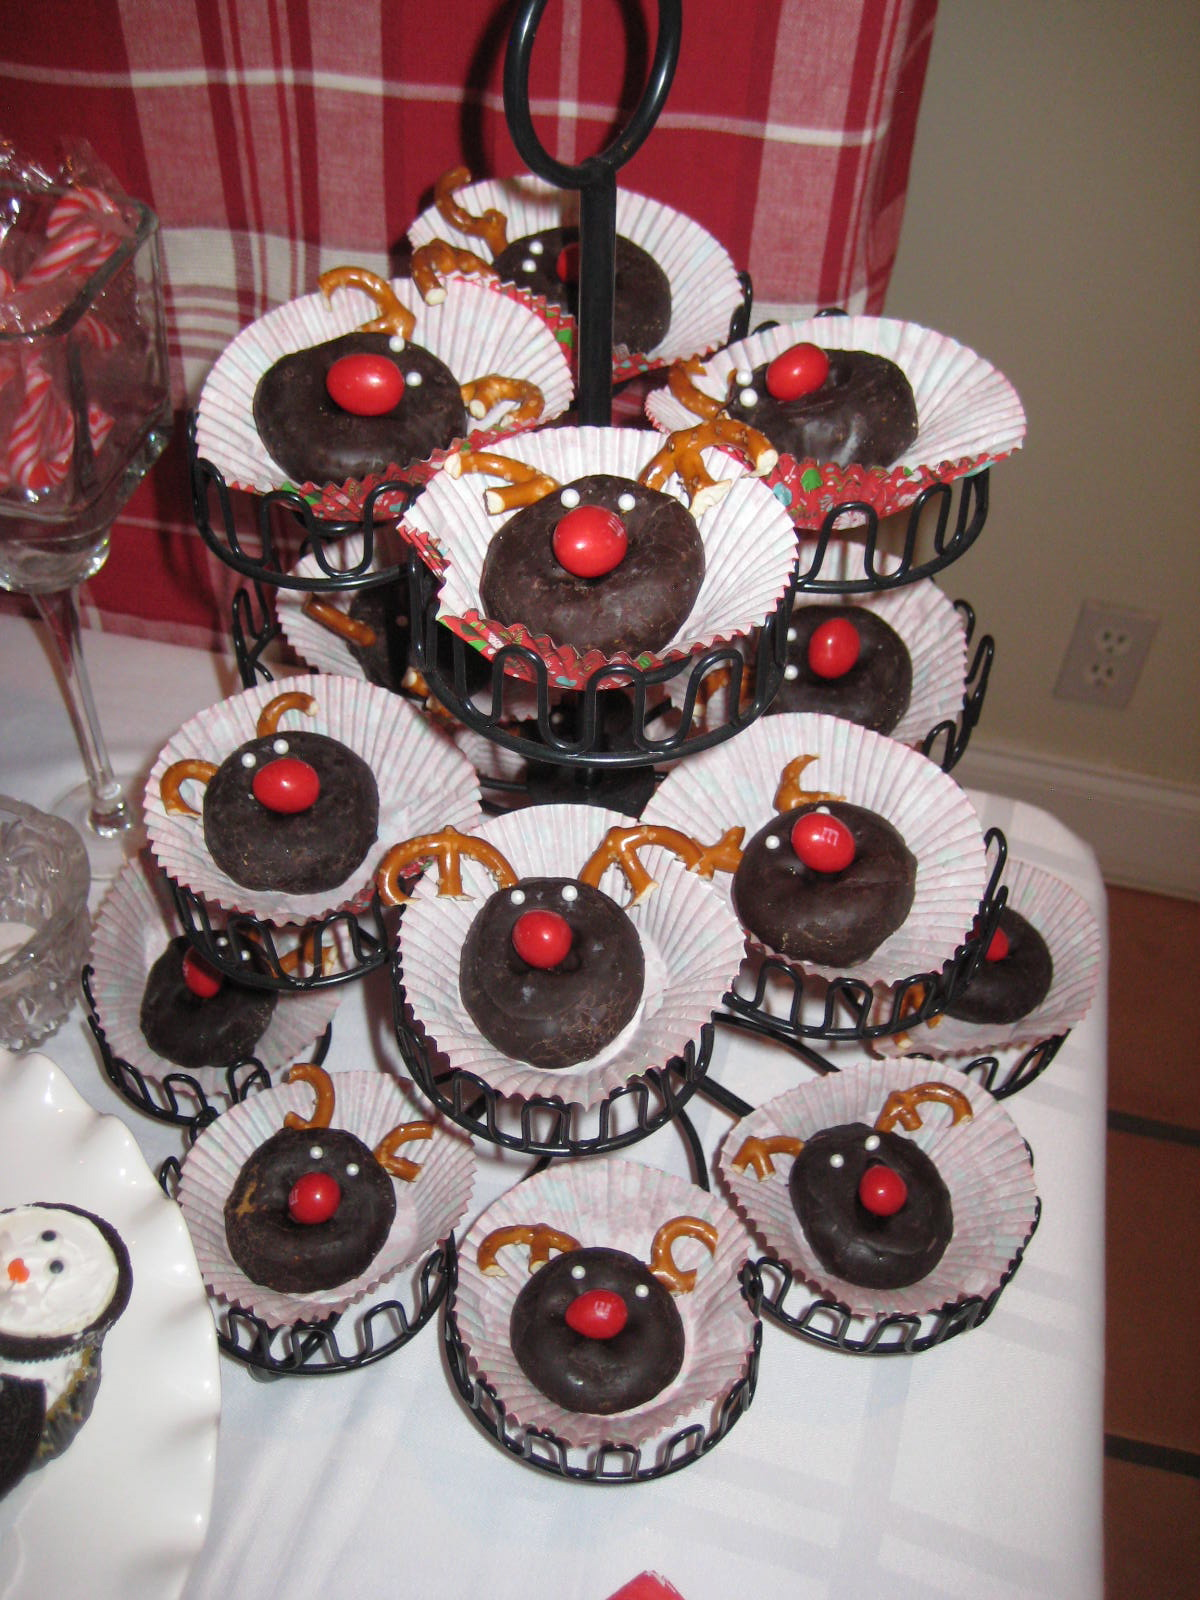 Creative Ideas For Salon And Spa Businesses: Creative Party Ideas By Cheryl: Christmas Pajama Party